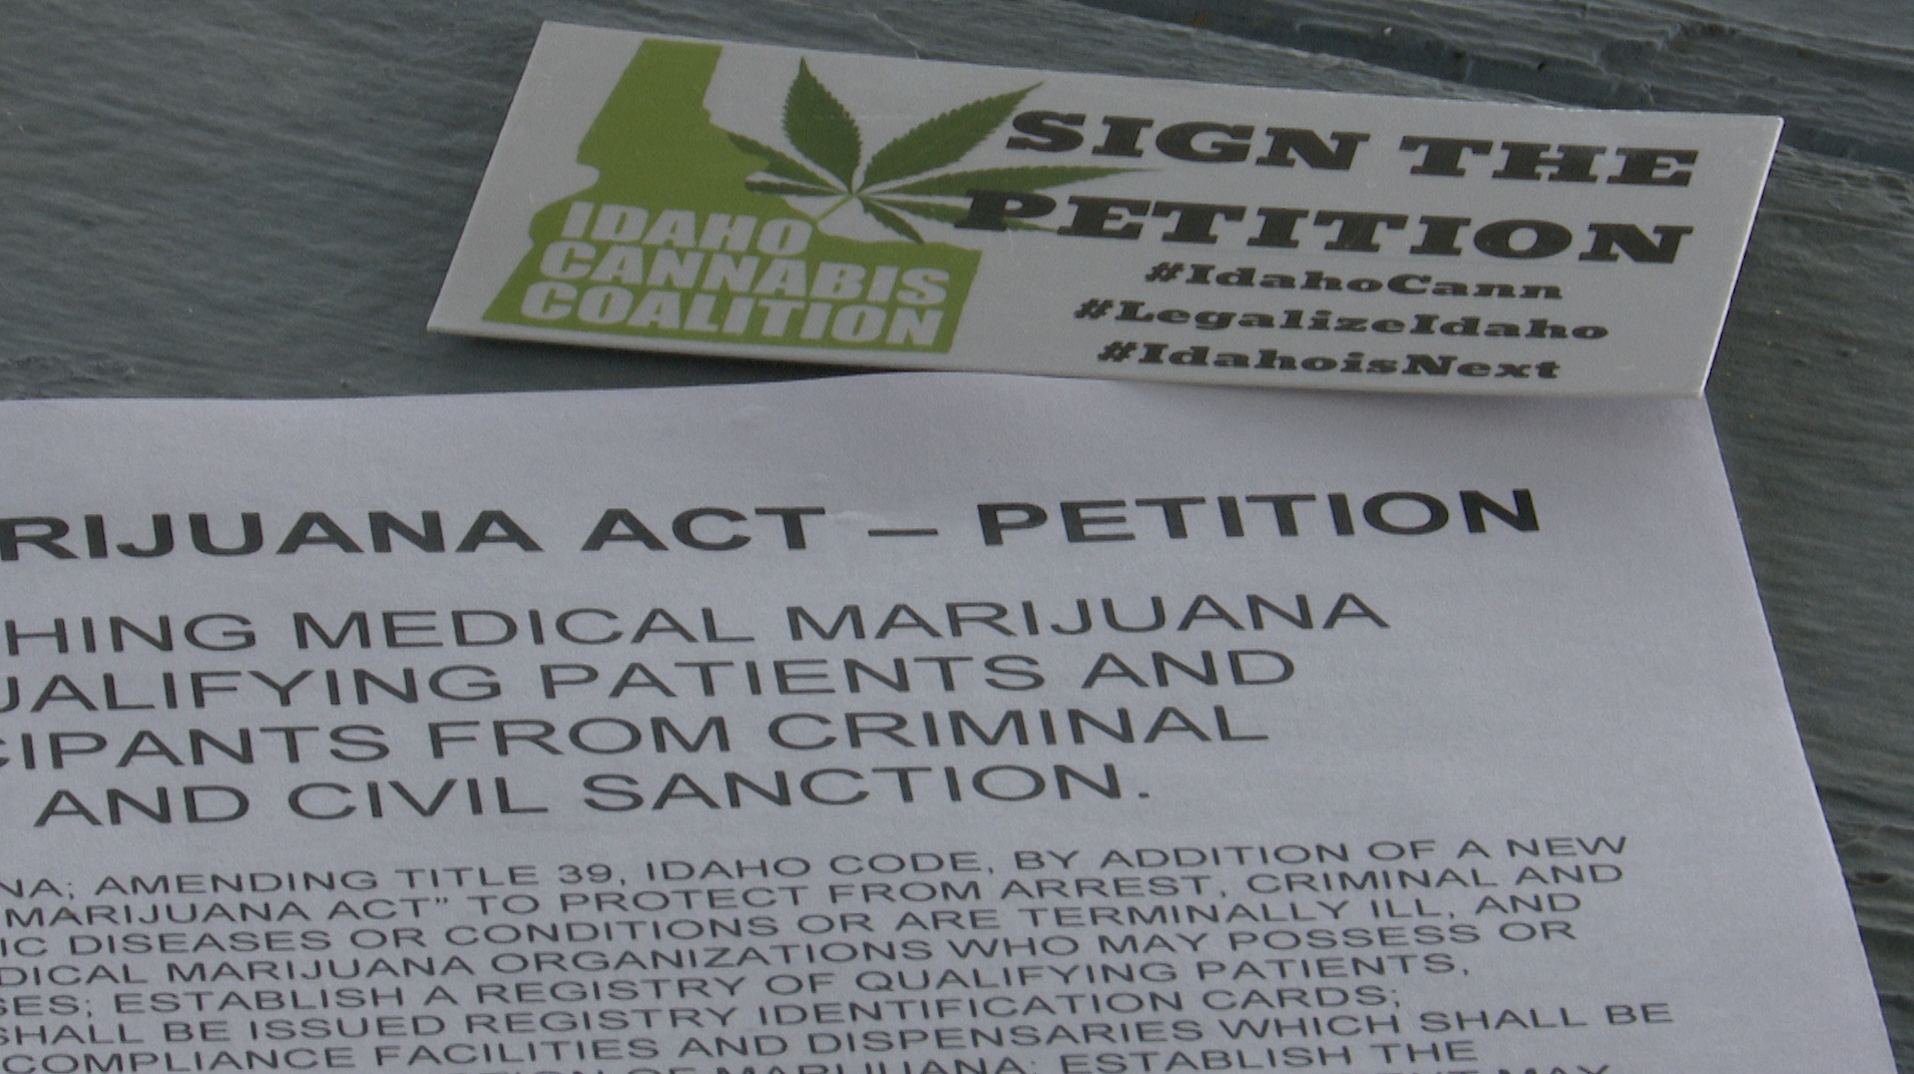 Medical marijuana petition